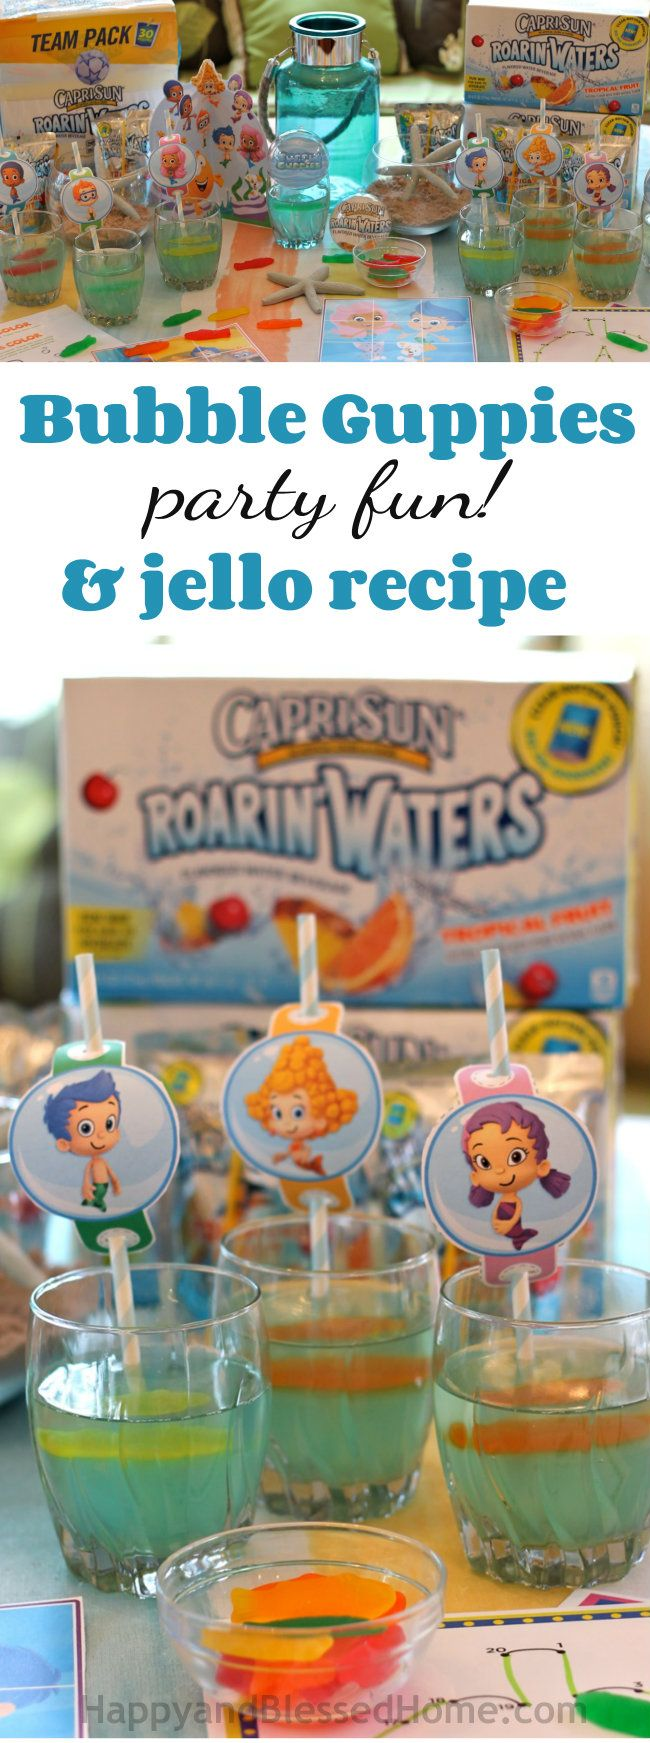 Kid party fun! Free Printables, Bubble Guppies Jello Recipe and Nickelodeon Kids' Choice Awards includes an easy recipe for a Bubble Guppies themed Jello & FREE Printables from HappyandBlessedHome.com